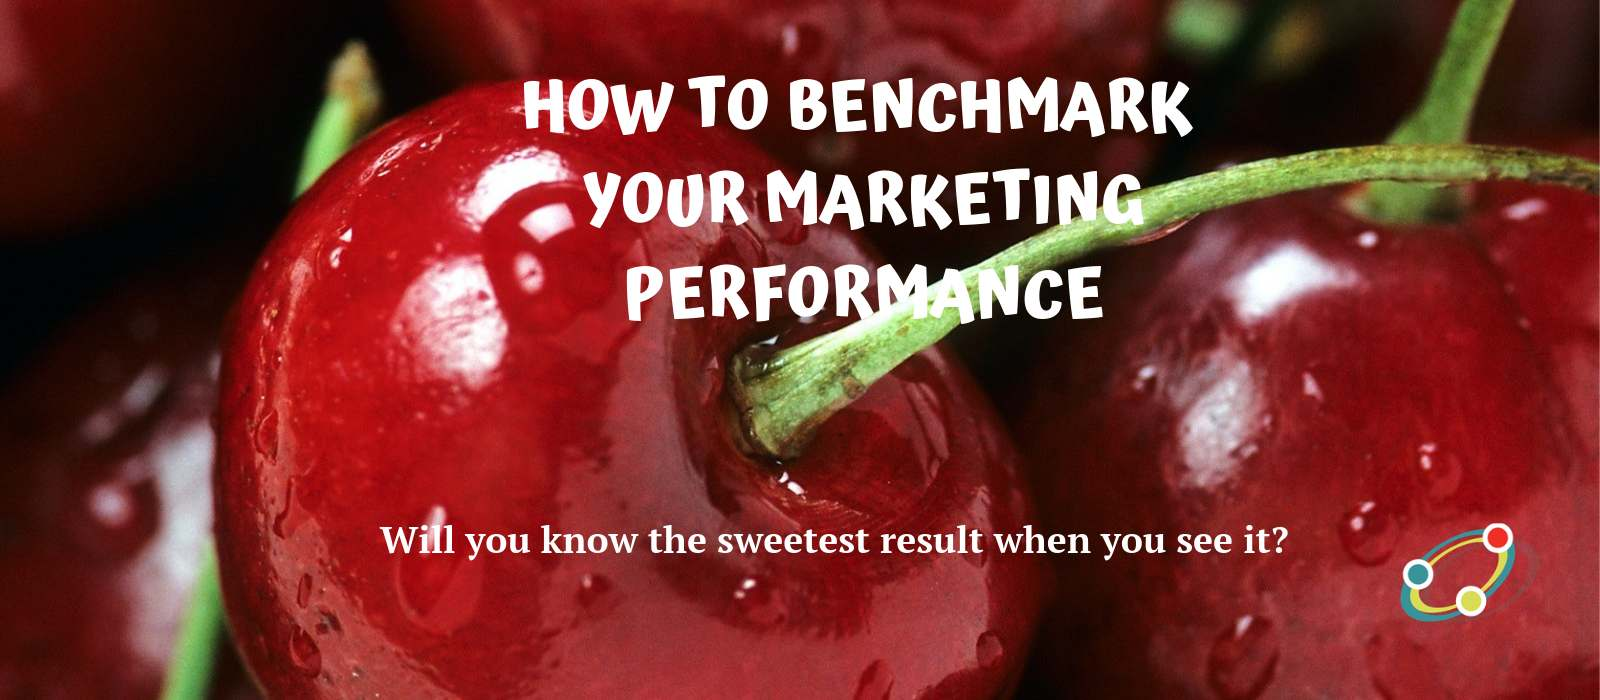 How-to-Benchmark-Your-Performance_close-up image of cherries